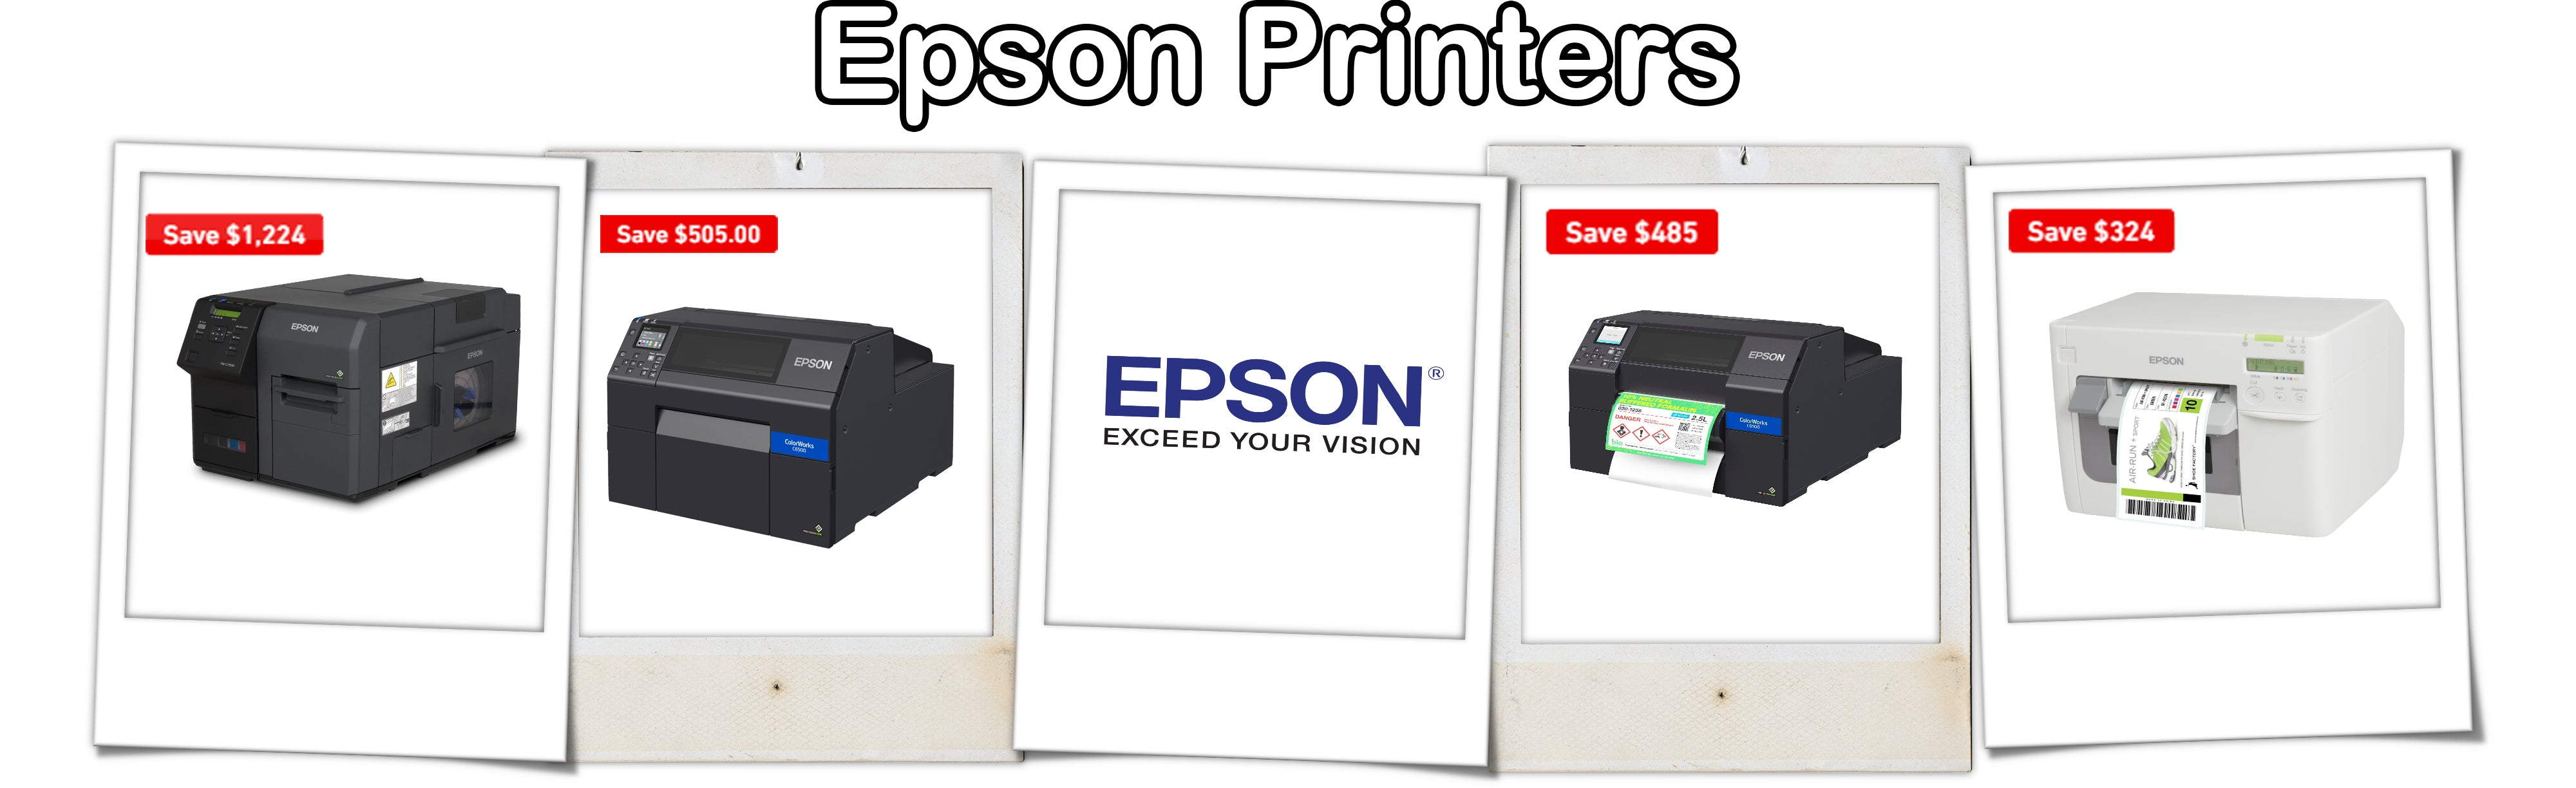 ForeFront Label Solutions - Epson Printers Sale